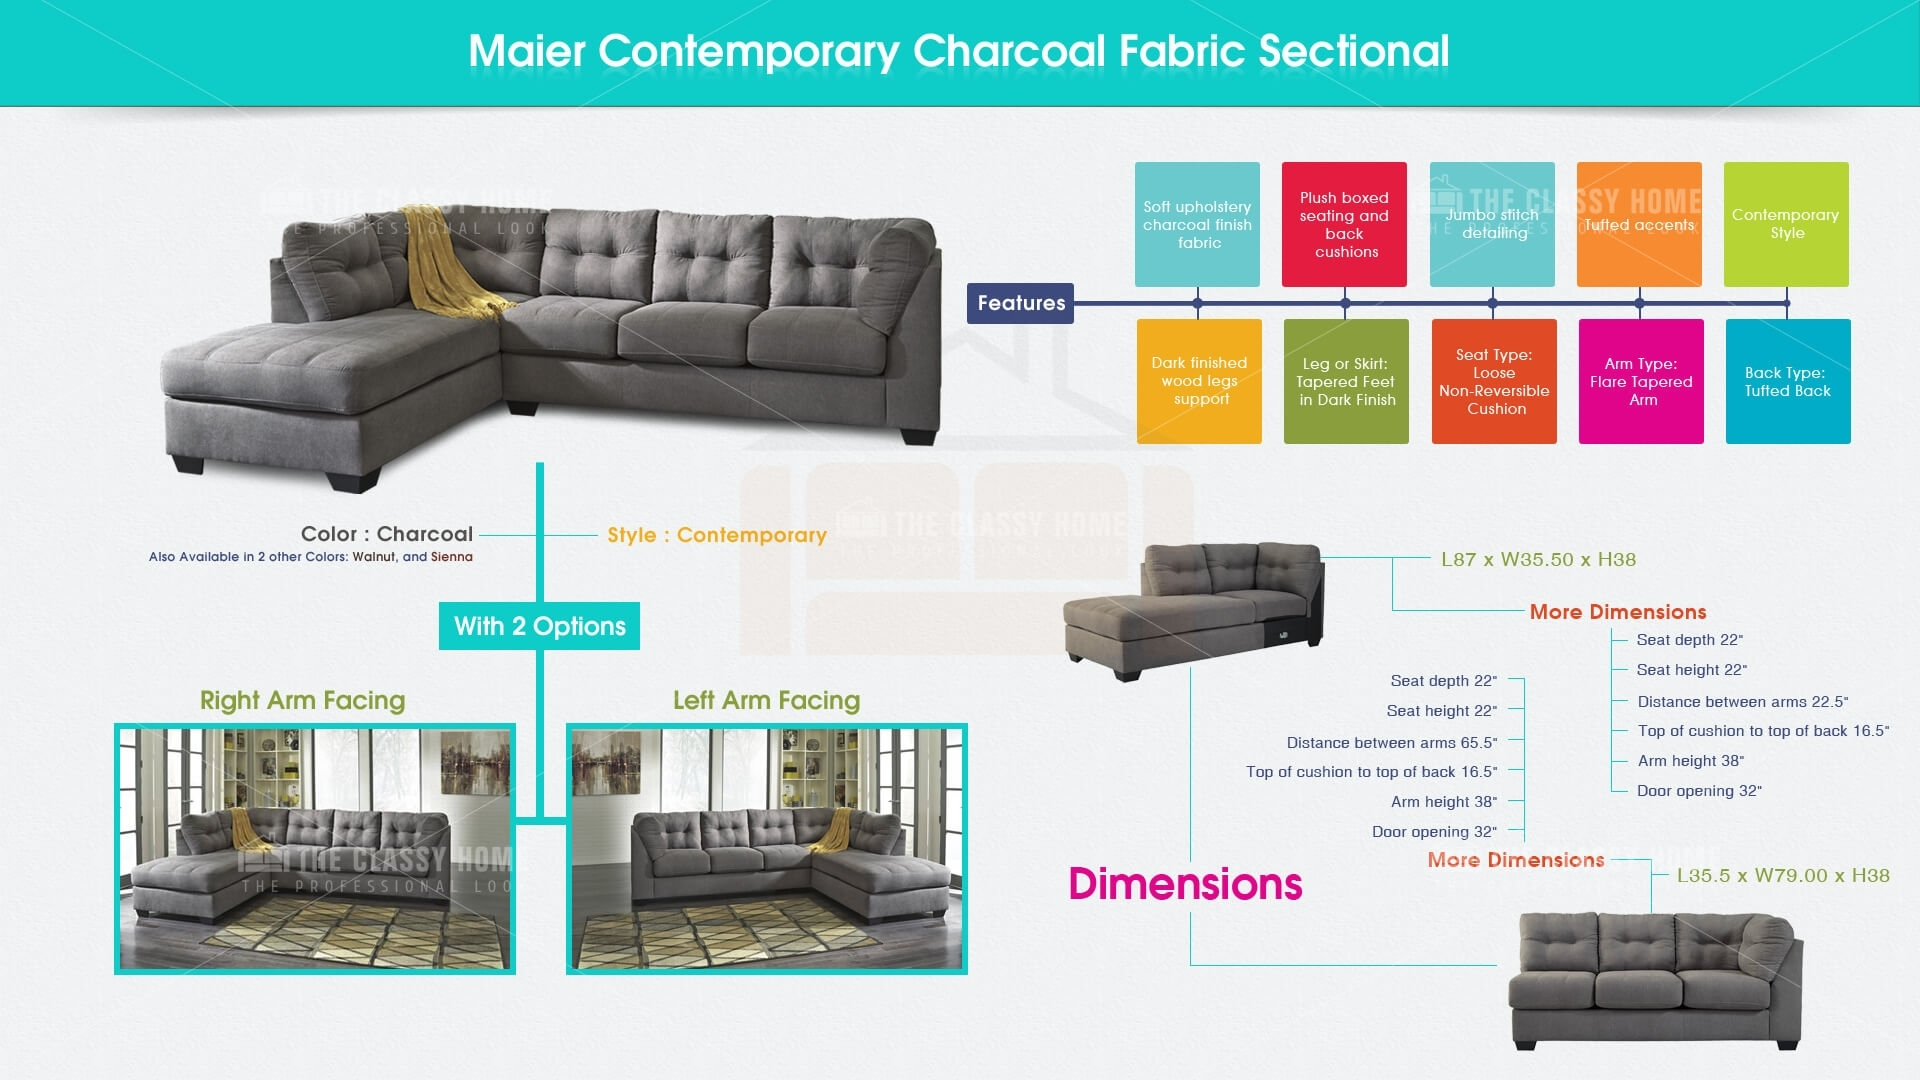 Ashley Furniture Maier Charcoal Raf Chaise Sectional | The Classy Home Within Lucy Grey 2 Piece Sectionals With Raf Chaise (View 16 of 25)